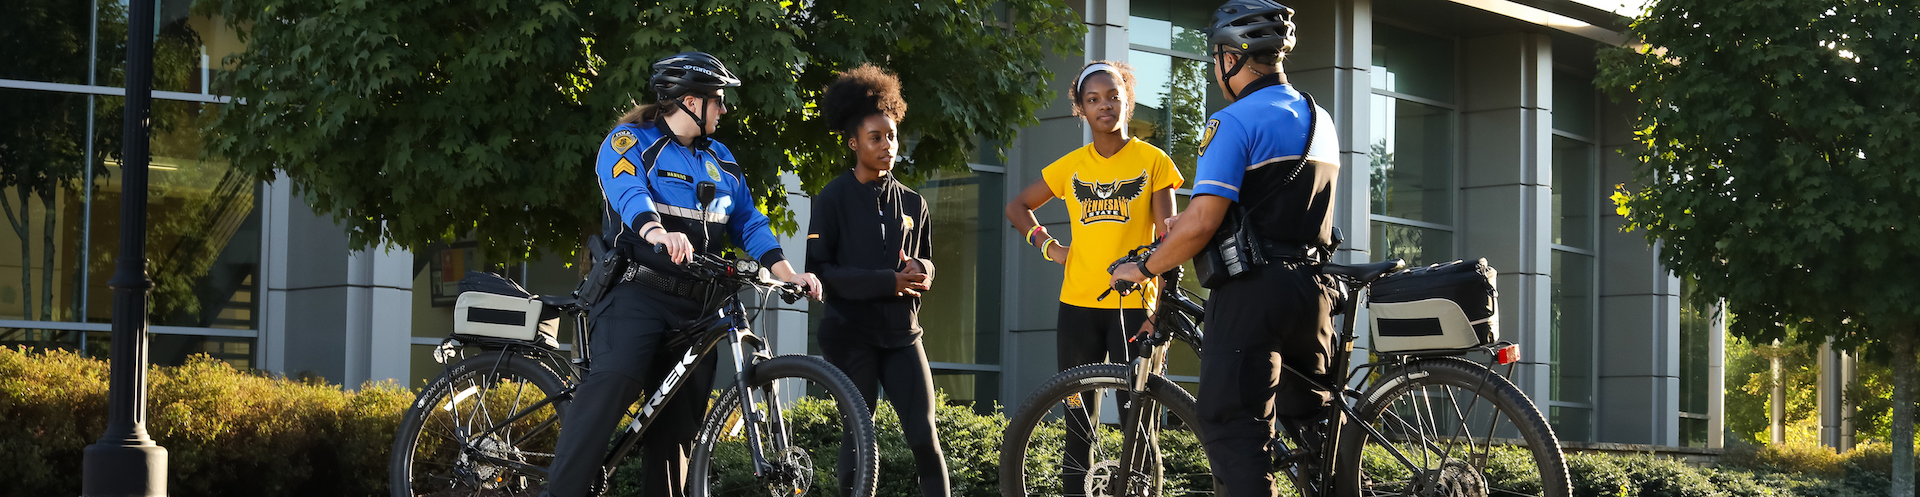 KSU PD bicycle officers and students